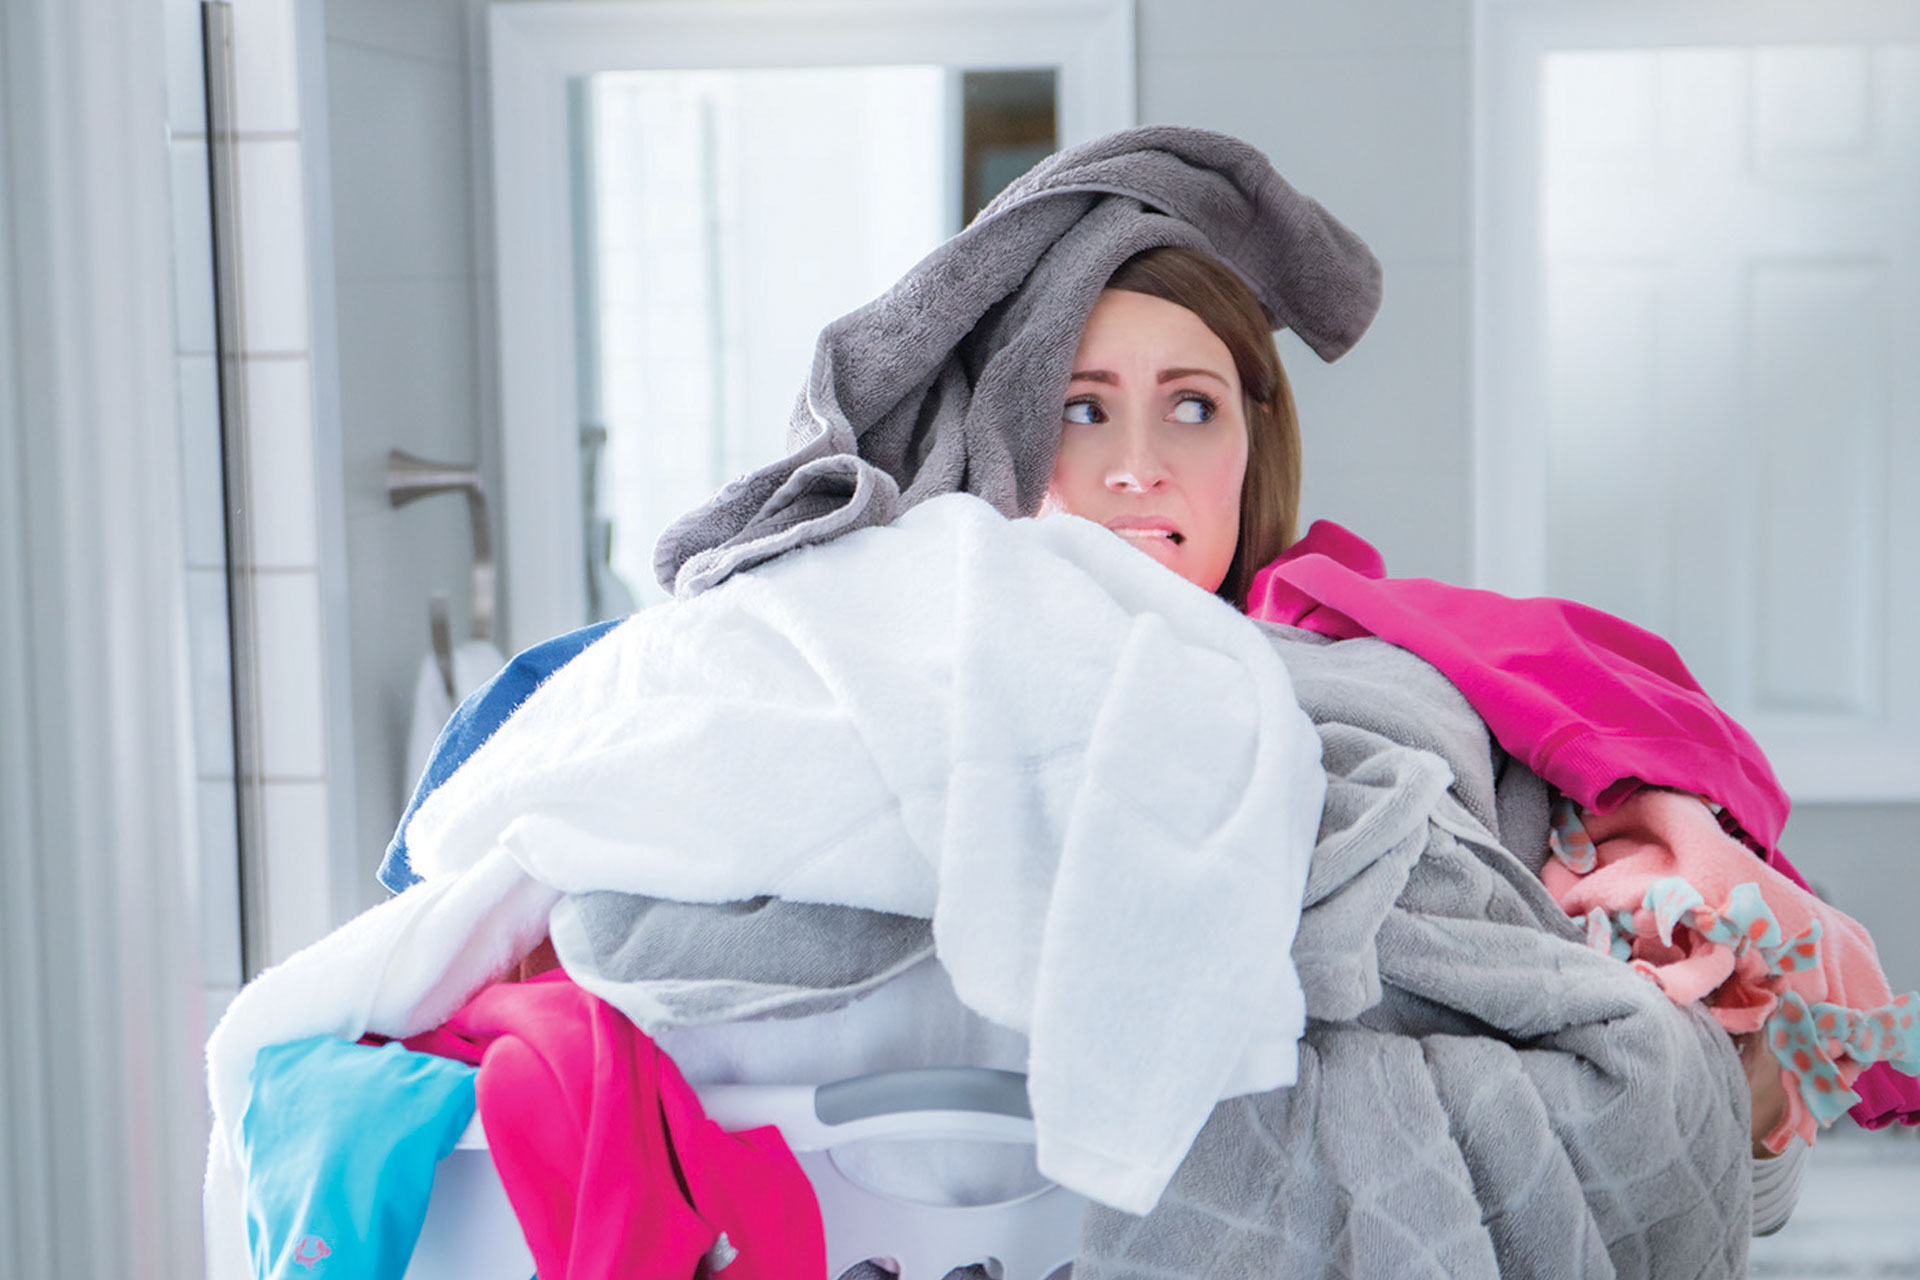 Overwhelmed Woman with Laundry